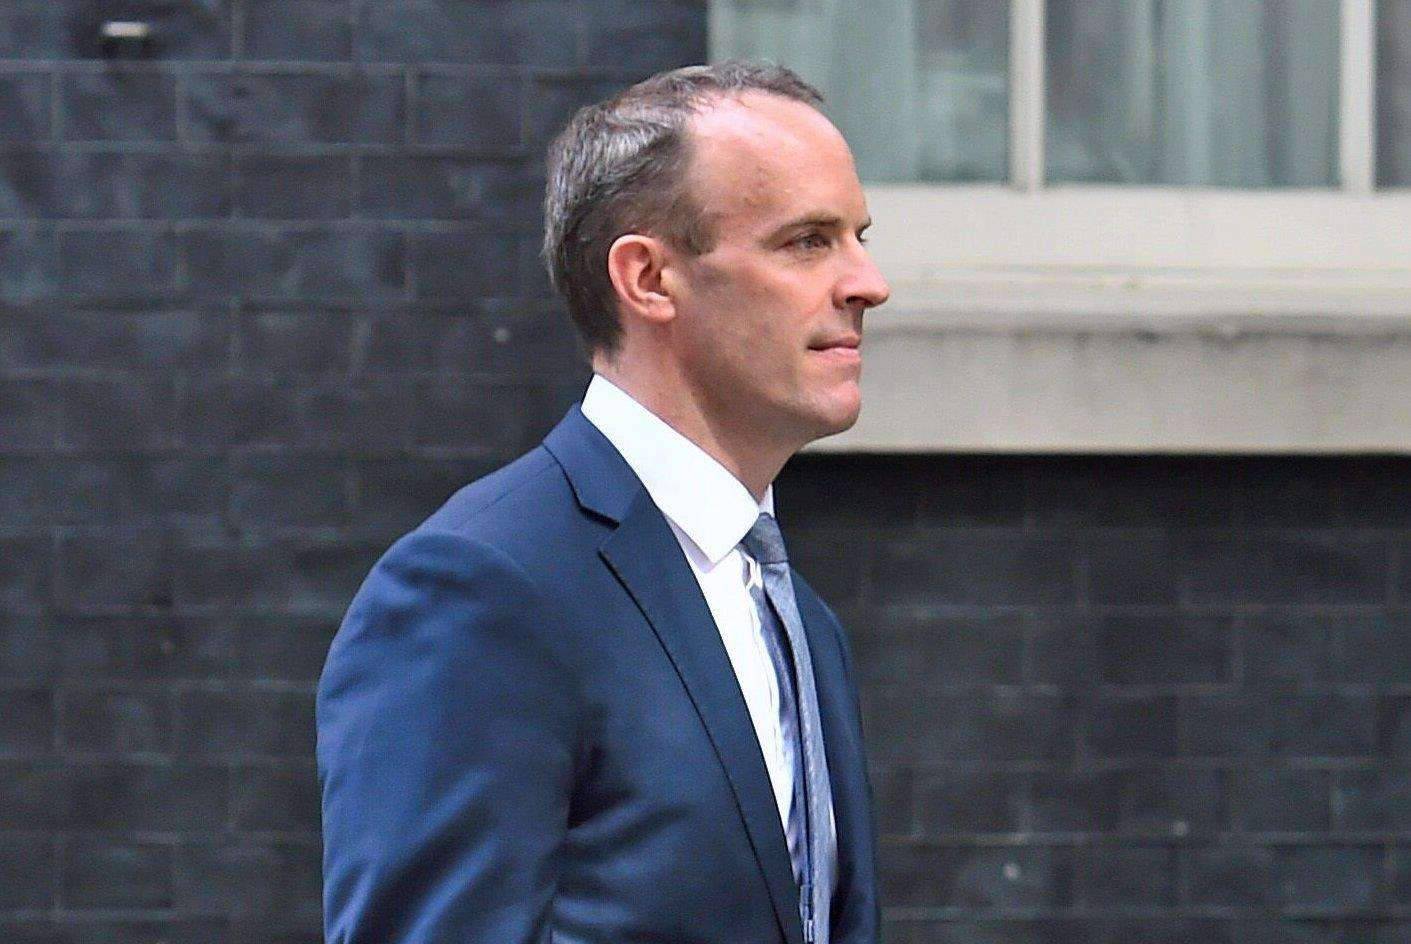 Dominic Raab was criticised today for the comments. Picture: Kirsty O'Connor/PA Wire